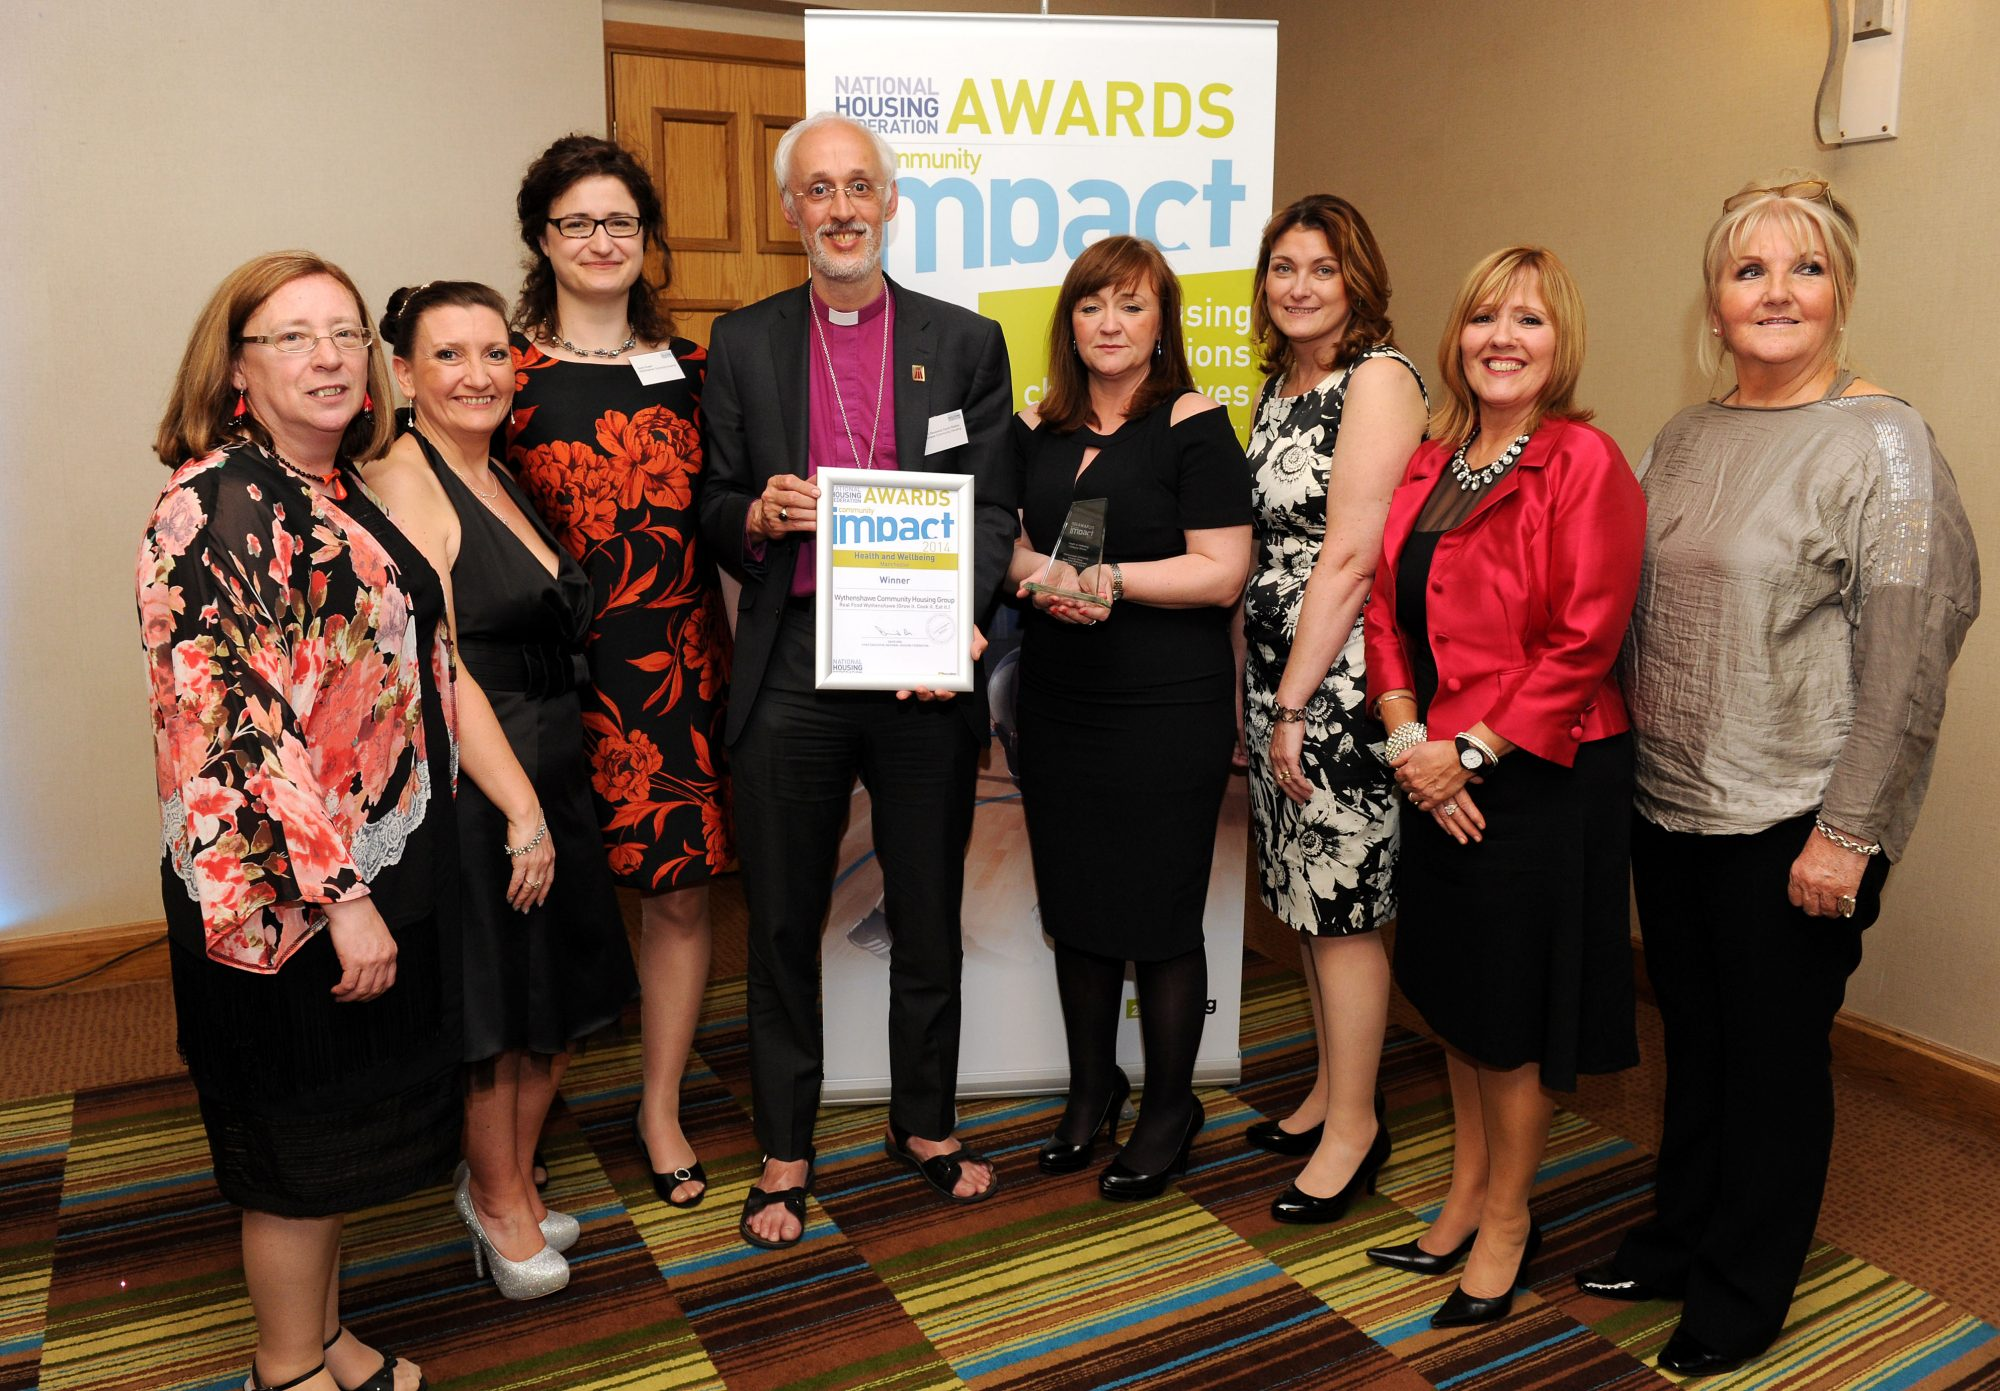 WCHG's Real Food Team Wins A Place at National Awards Finals image